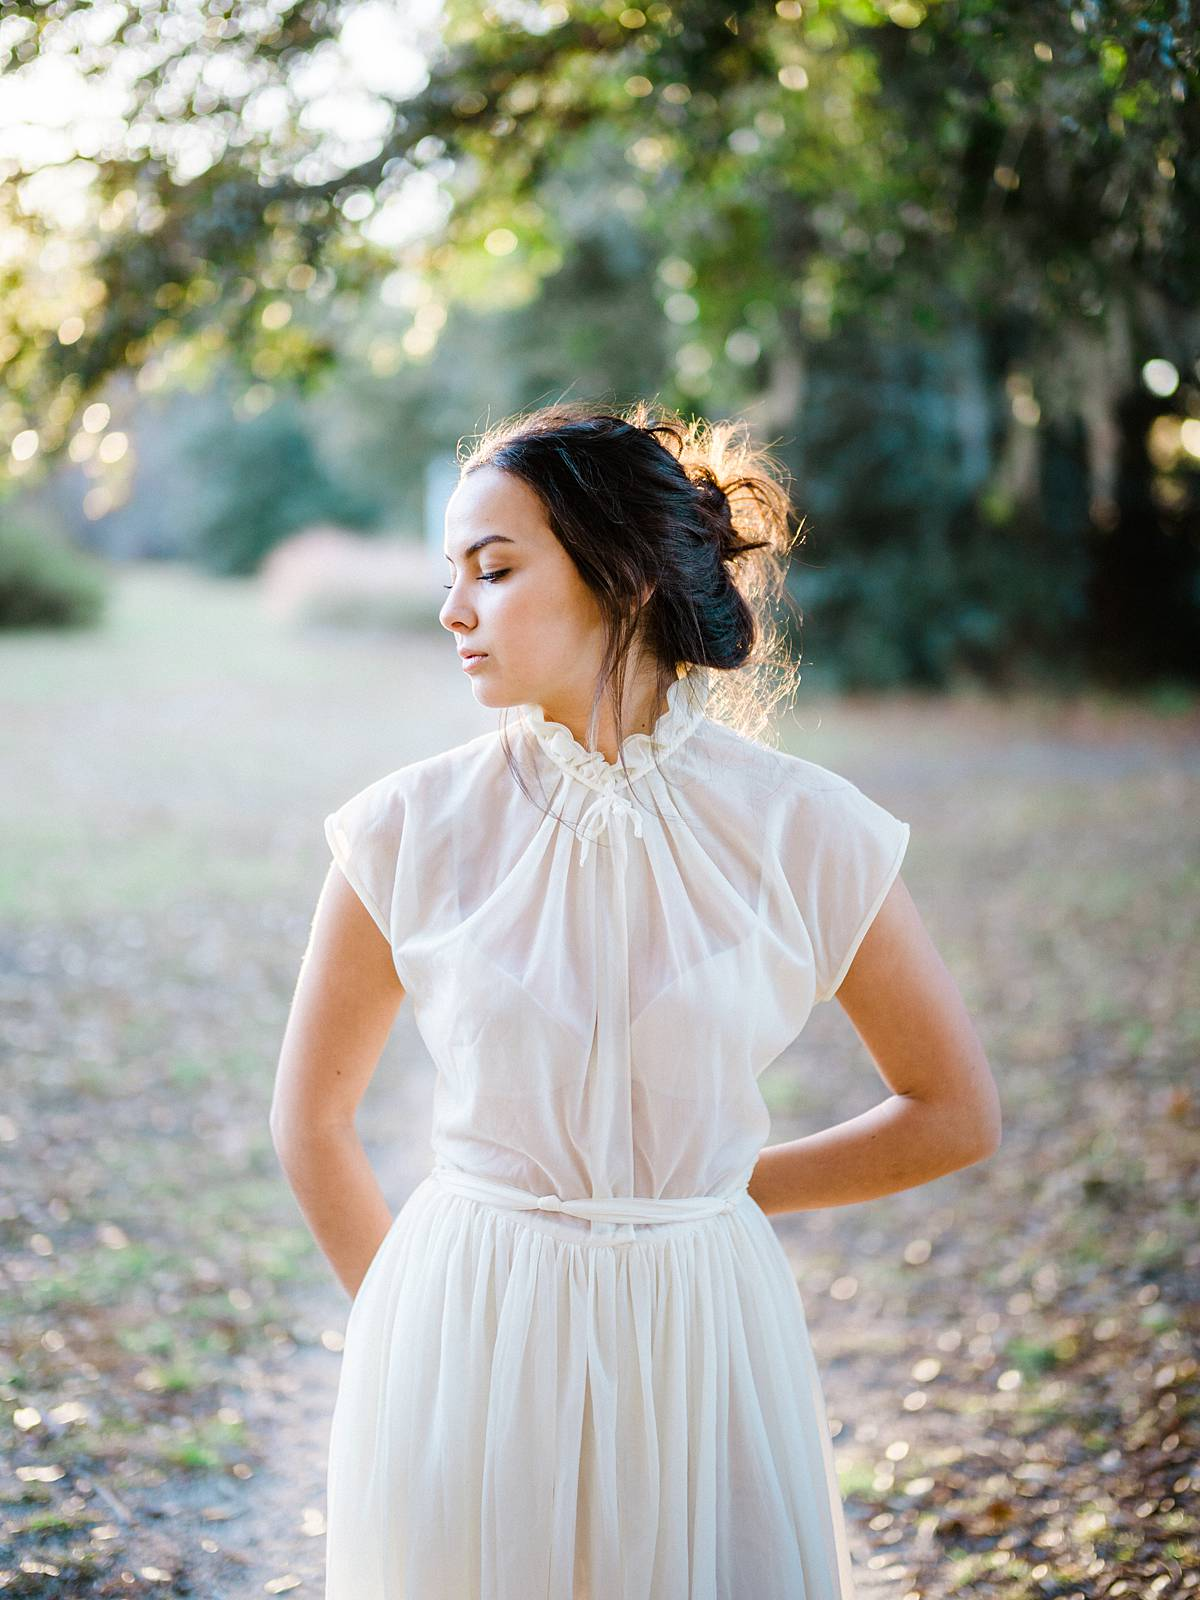 1911 paulina hampton park charleston fall portraits sony leica 00002_web